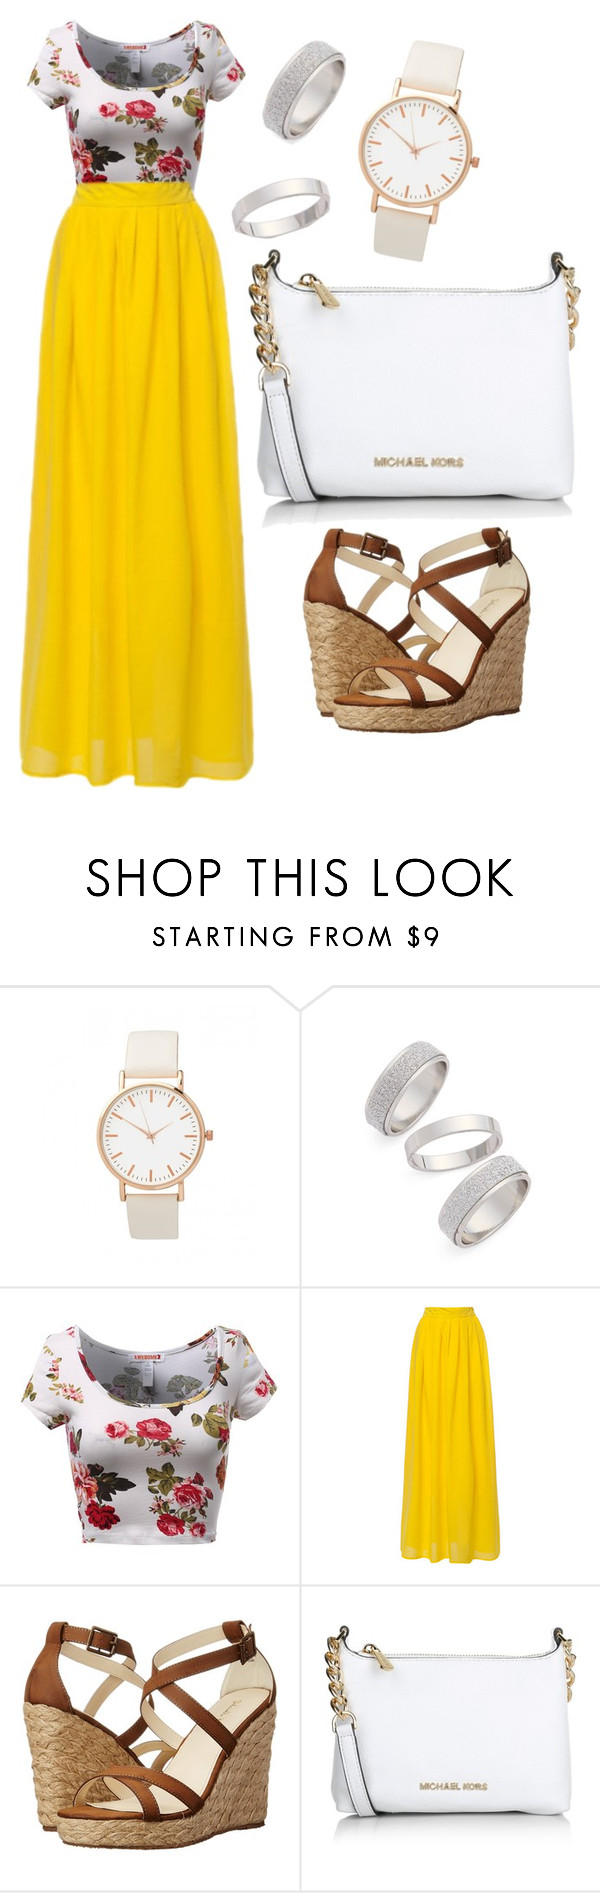 """""""#58"""" by micabugge on Polyvore featuring Topshop, Gabriella Rocha, Michael Kors, women's clothing, women's fashion, women, female, woman, misses and juniors"""